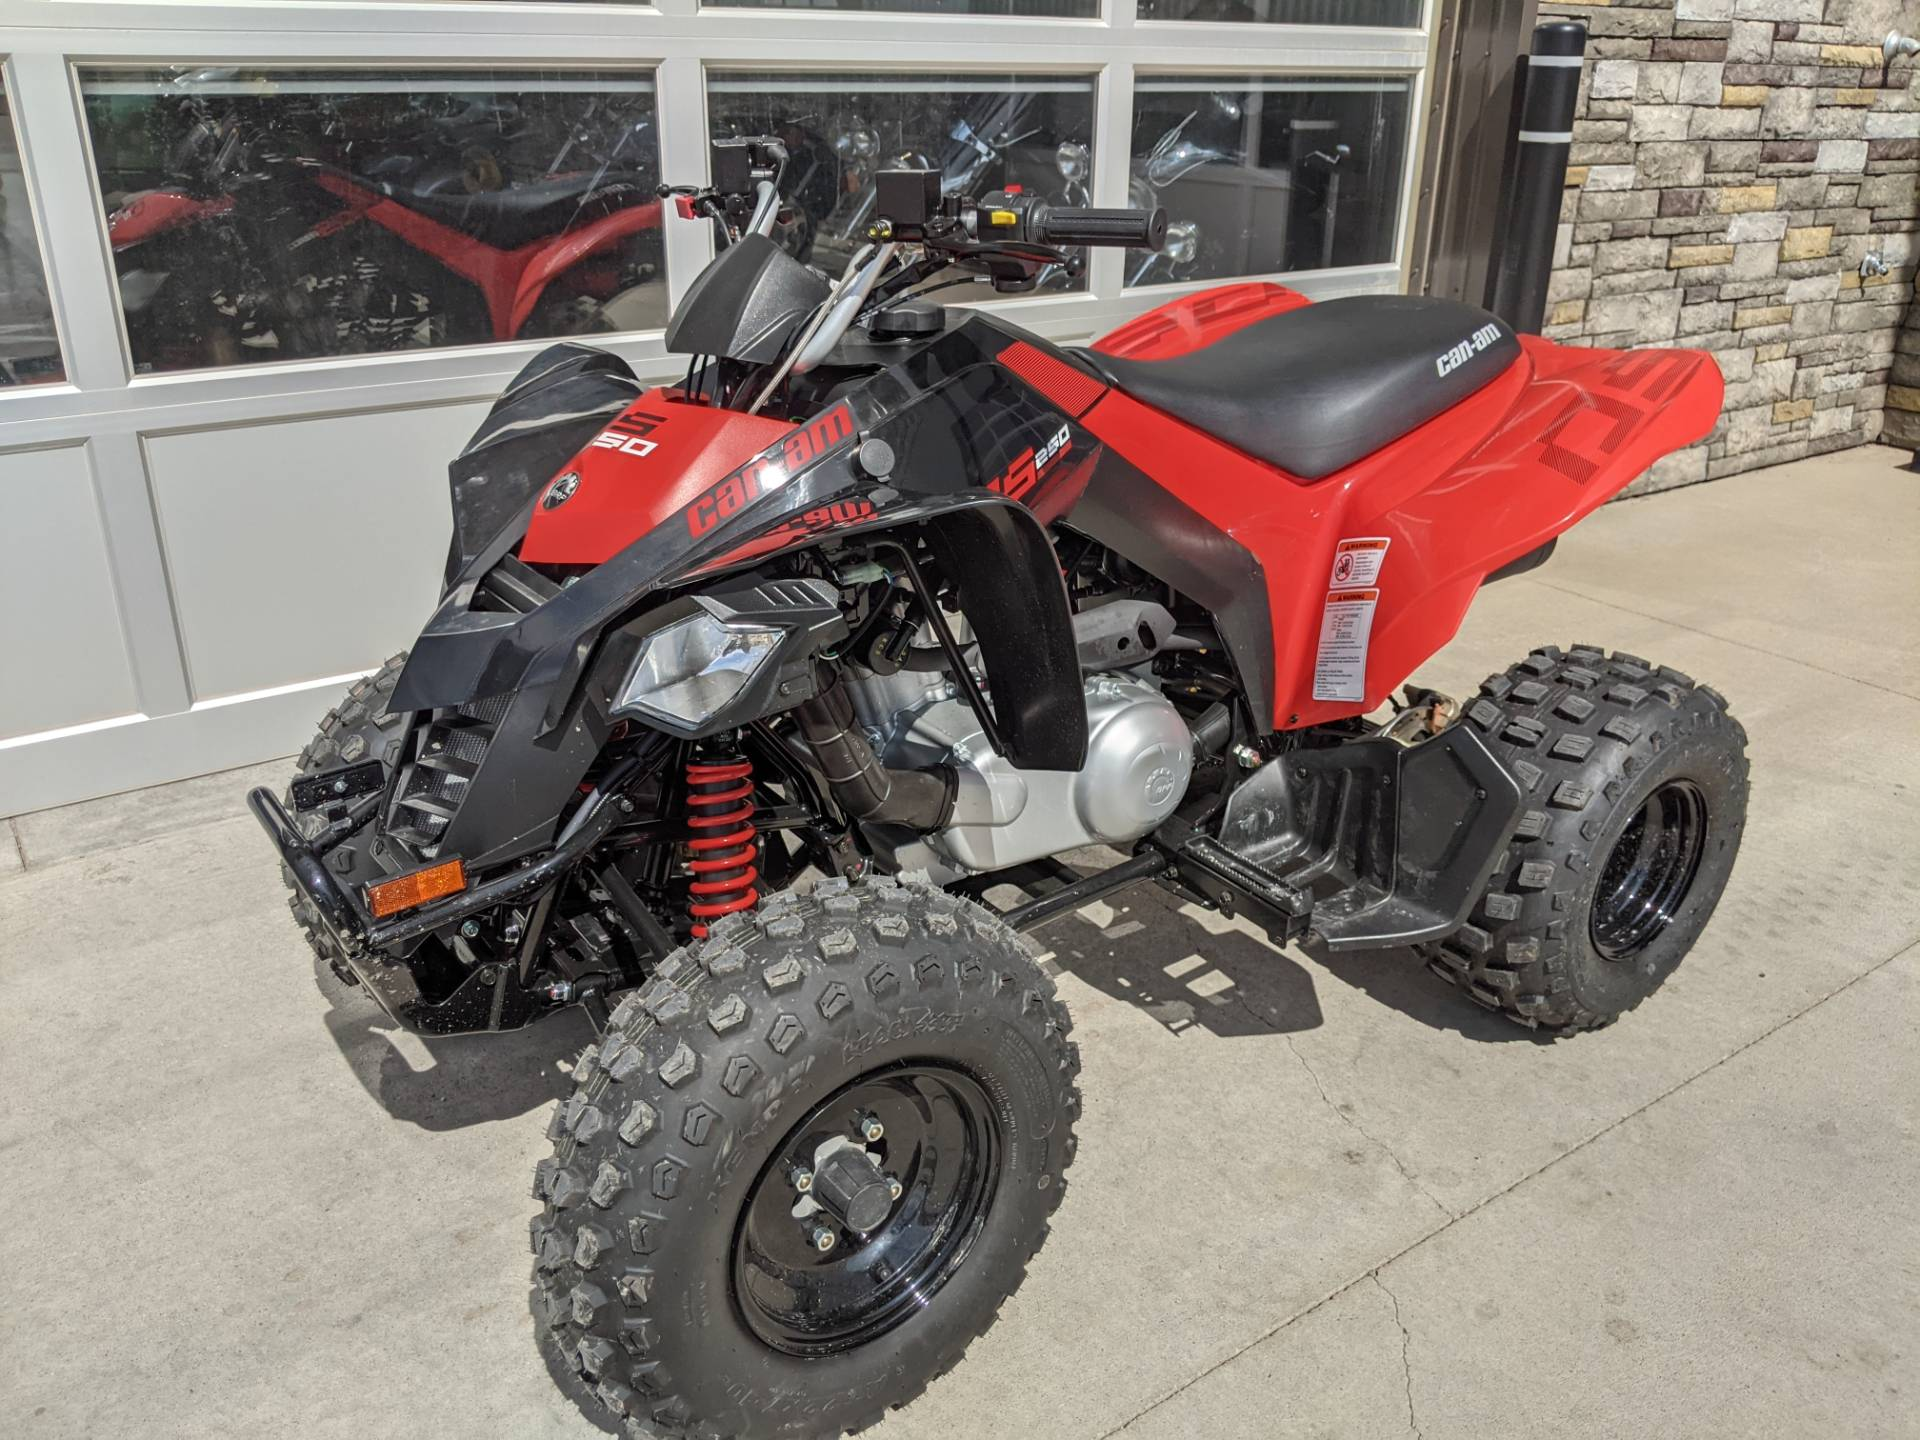 2021 Can-Am DS 250 in Rapid City, South Dakota - Photo 2